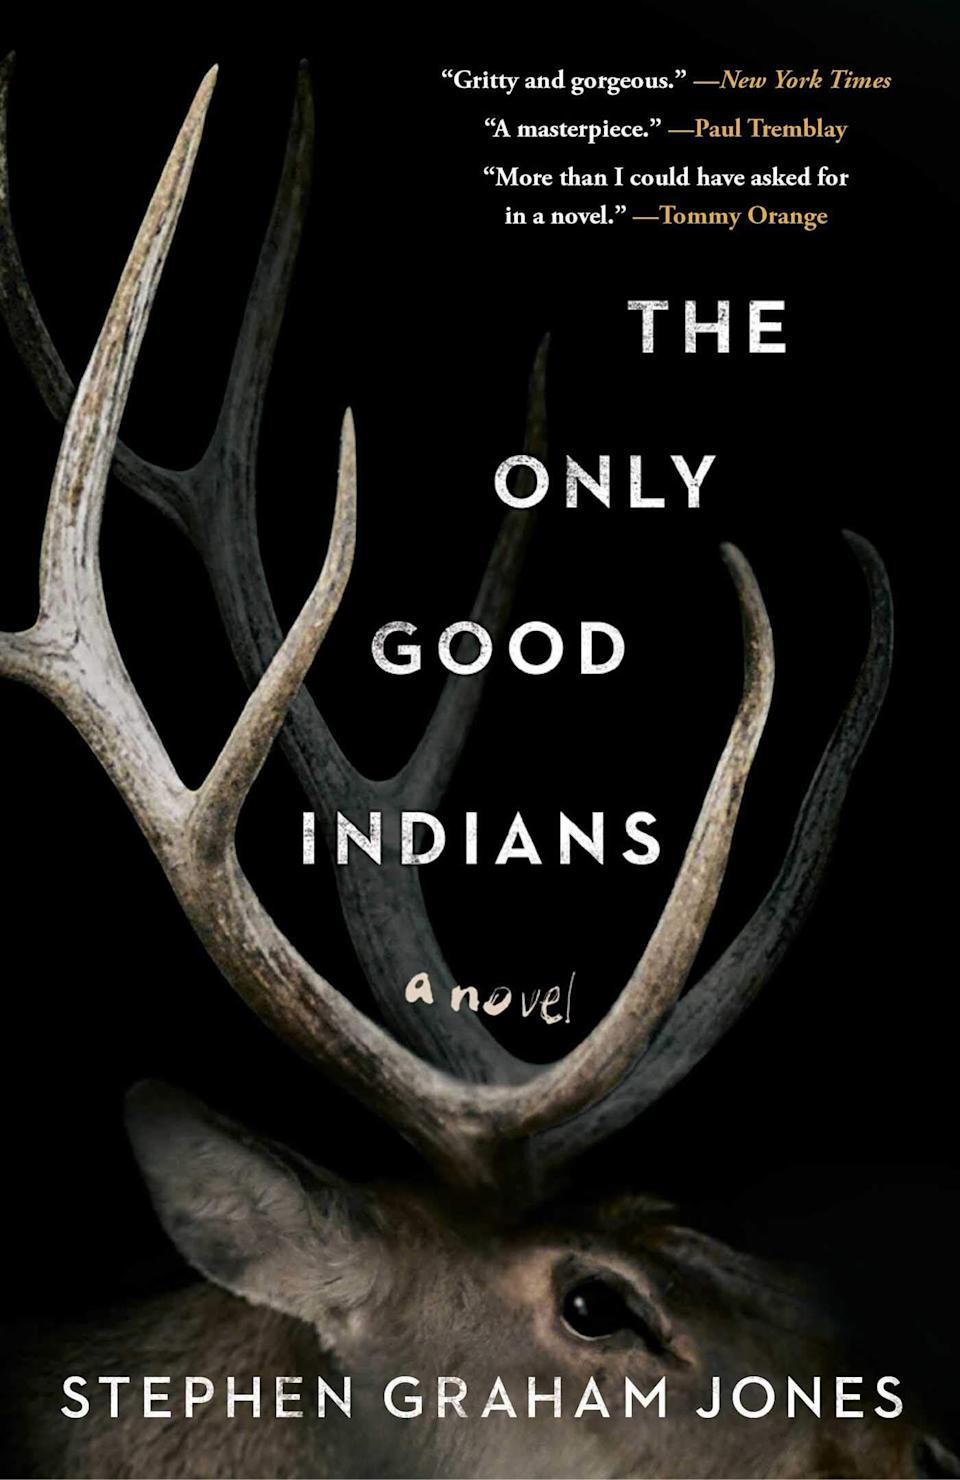 """This novel follows four Native American men who are being pursued by a dark force that's trying to catch up with them after a traumatic and mysterious childhood event.<br /><br />You can read more about this book on <a href=""""https://fave.co/37rleBe"""" target=""""_blank"""" rel=""""noopener noreferrer"""">Goodreads</a> and find it for $25 at <a href=""""https://fave.co/35mHvNN"""" target=""""_blank"""" rel=""""noopener noreferrer"""">Bookshop</a>. It's also available at <a href=""""https://amzn.to/3jkfXO2"""" target=""""_blank"""" rel=""""noopener noreferrer"""">Amazon</a>."""